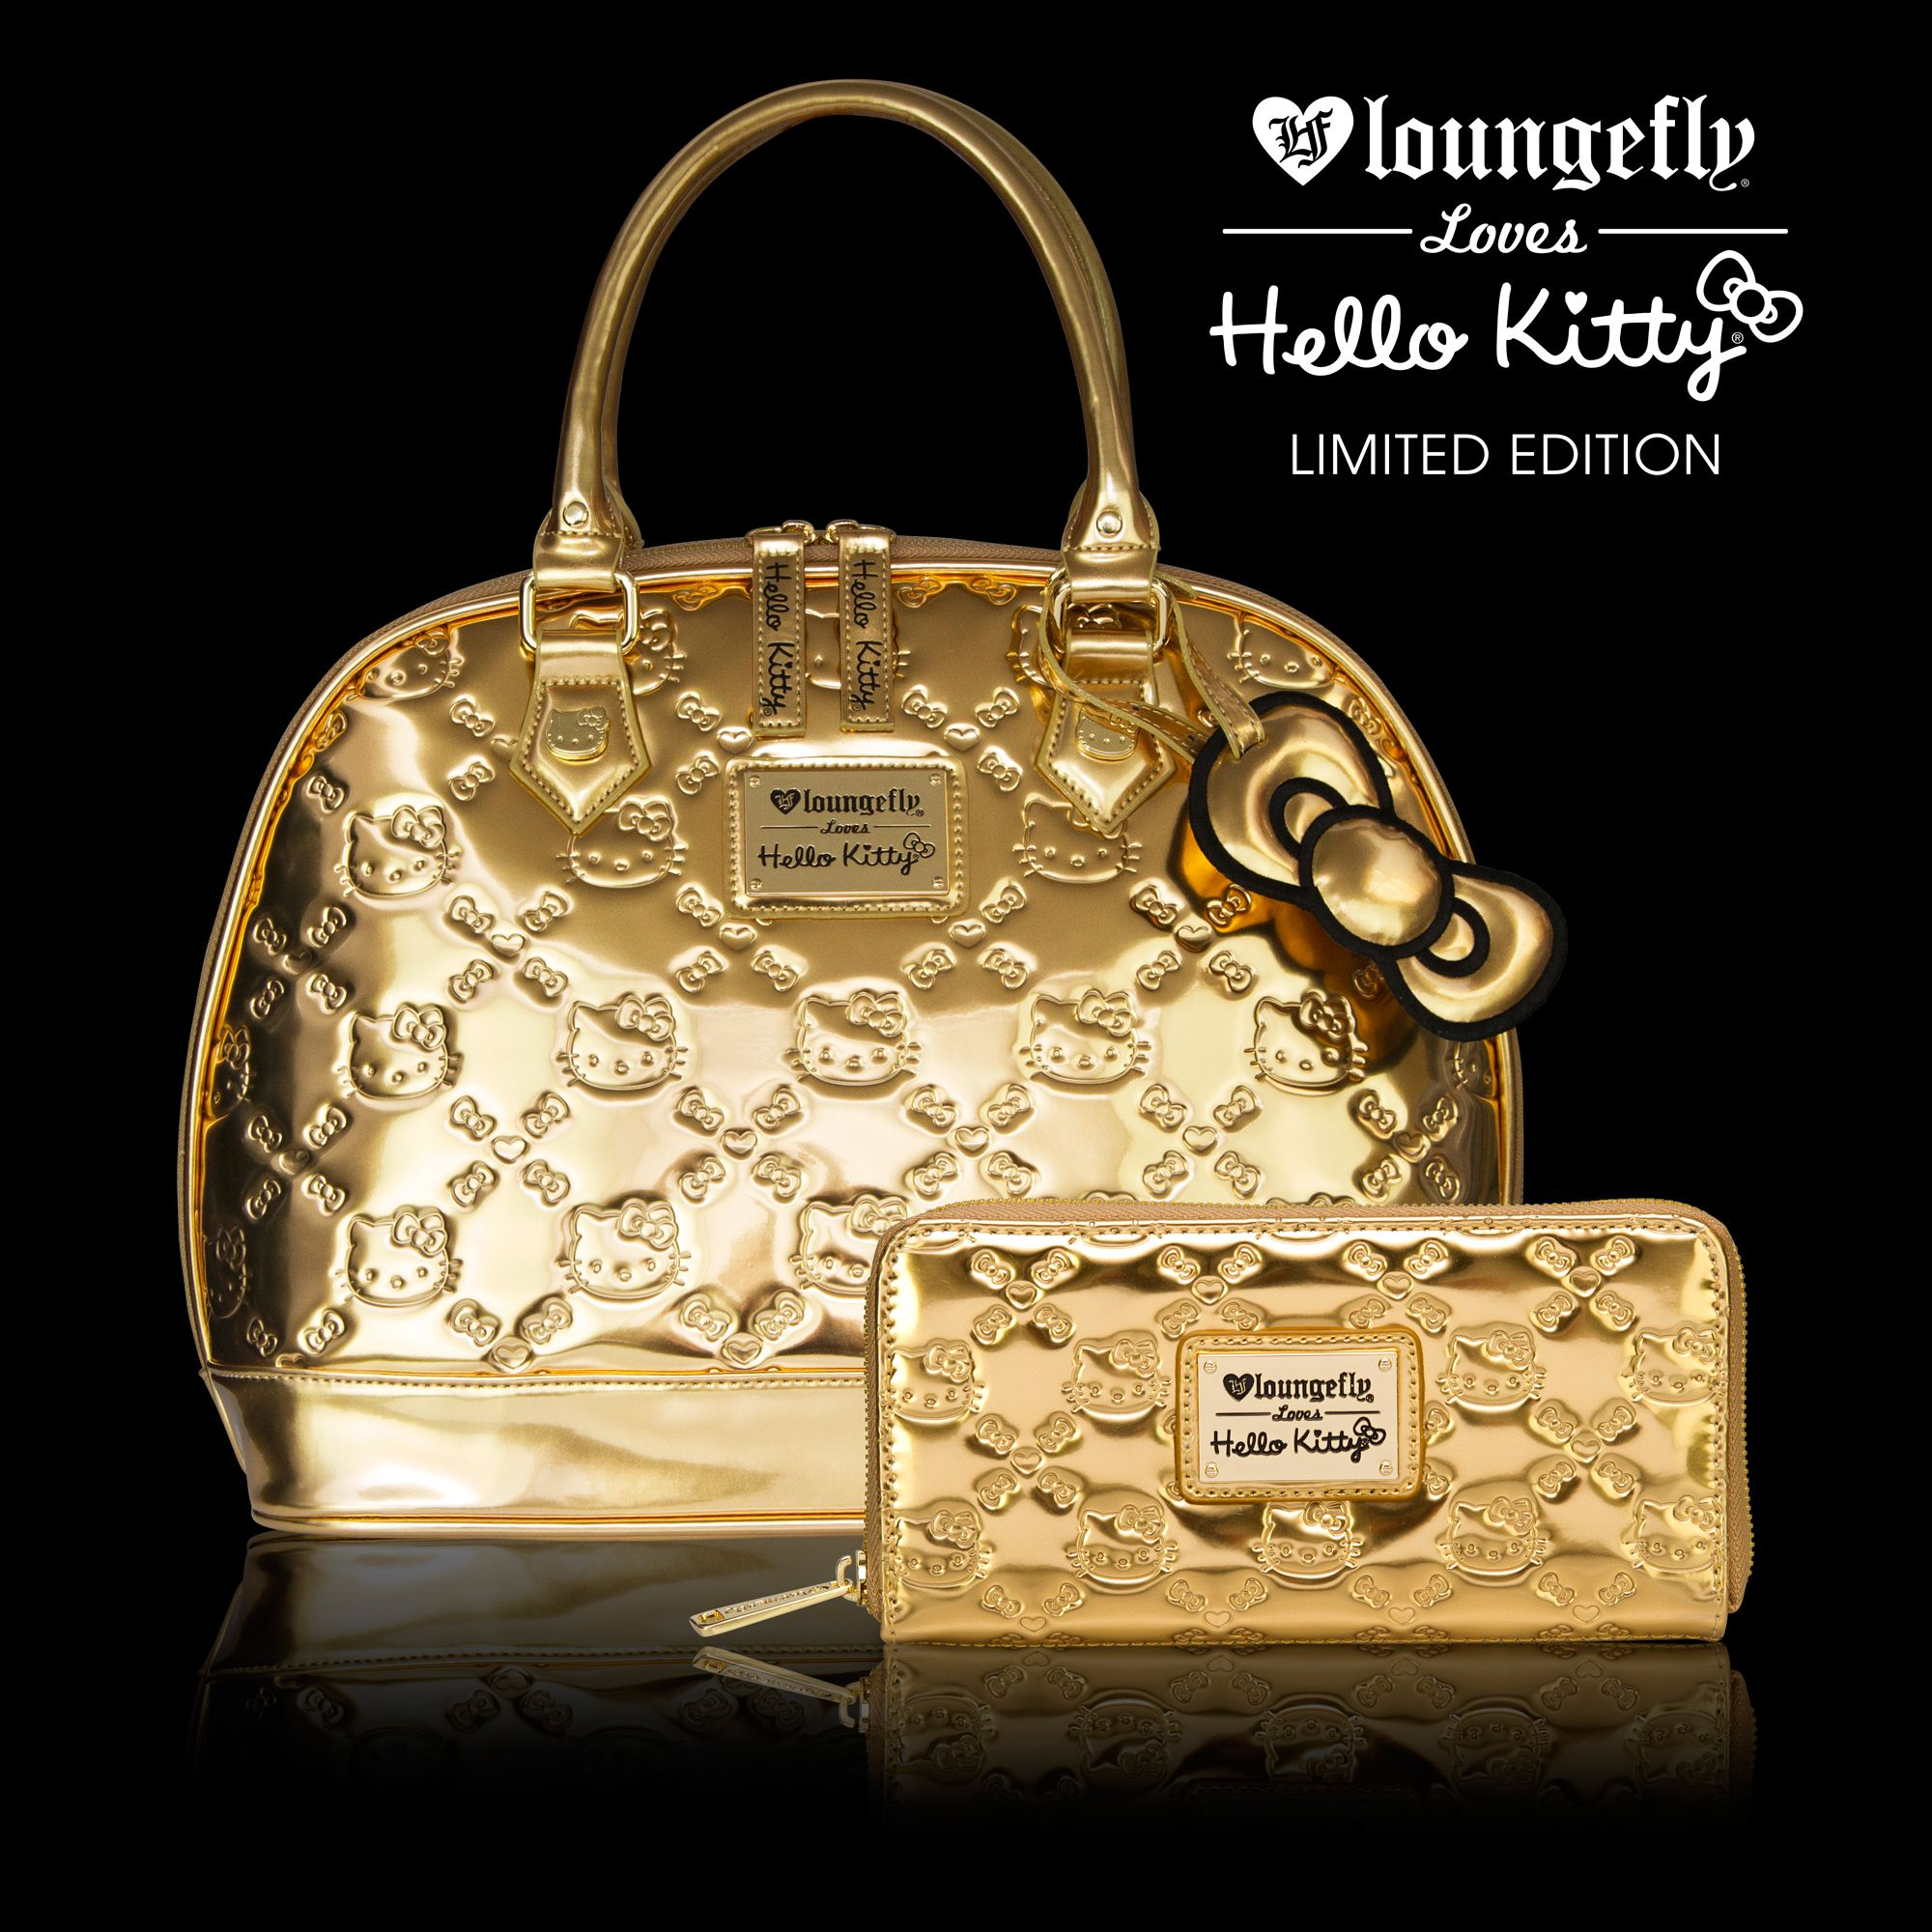 92f4fe06b Exclusive, limited edition Loungefly x Hello Kitty bags, individually  numbered for Hello Kitty Con.